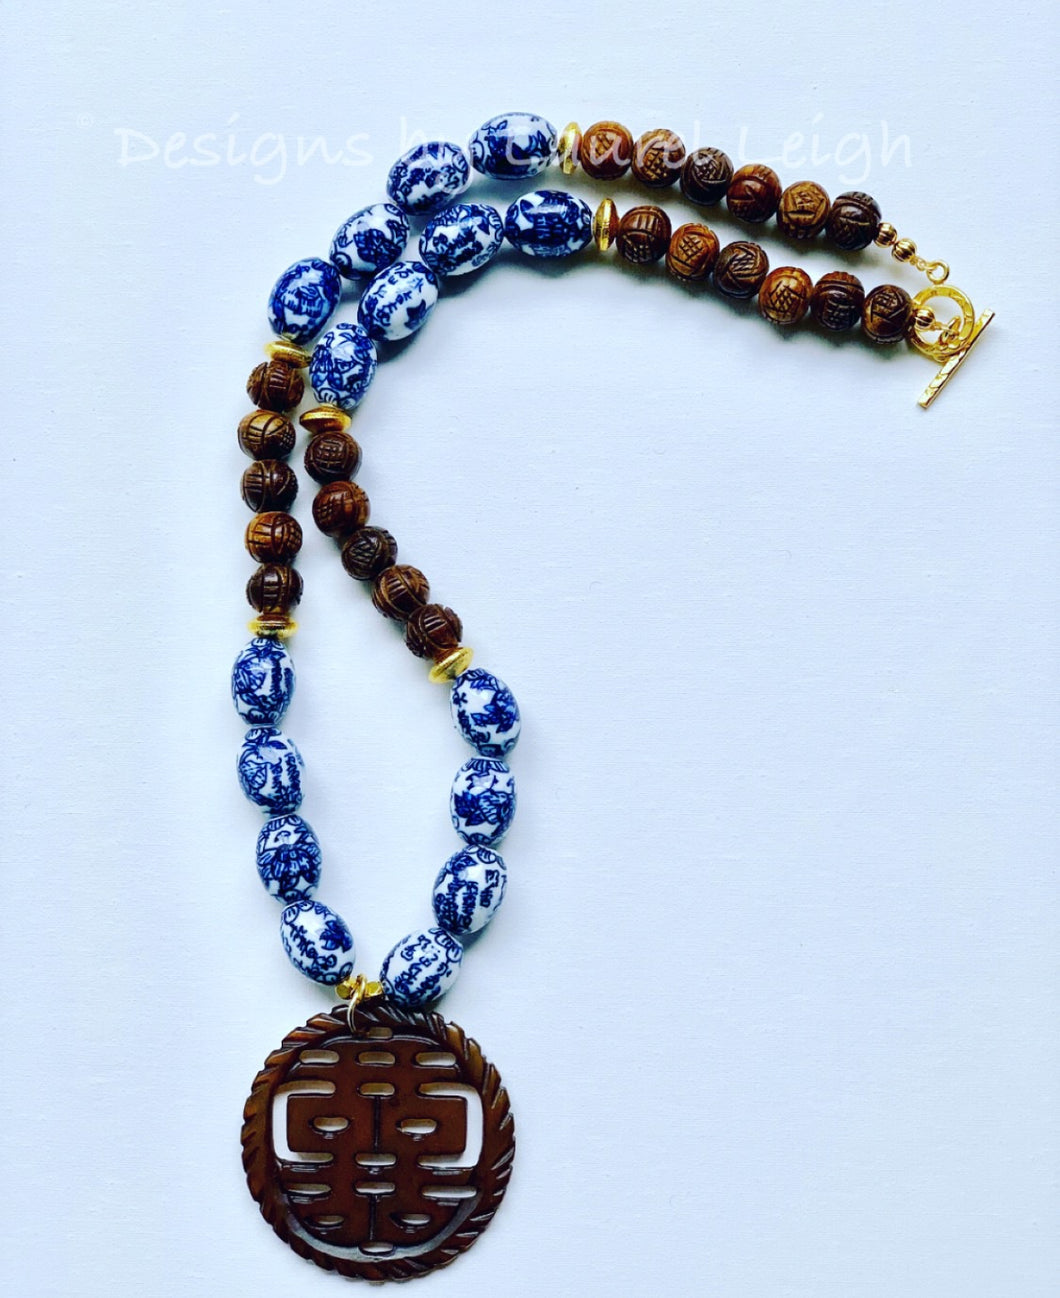 Blue and White Chinoiserie Vintage Bead Statement Necklace w/ Double Happiness Pendant - Ginger jar